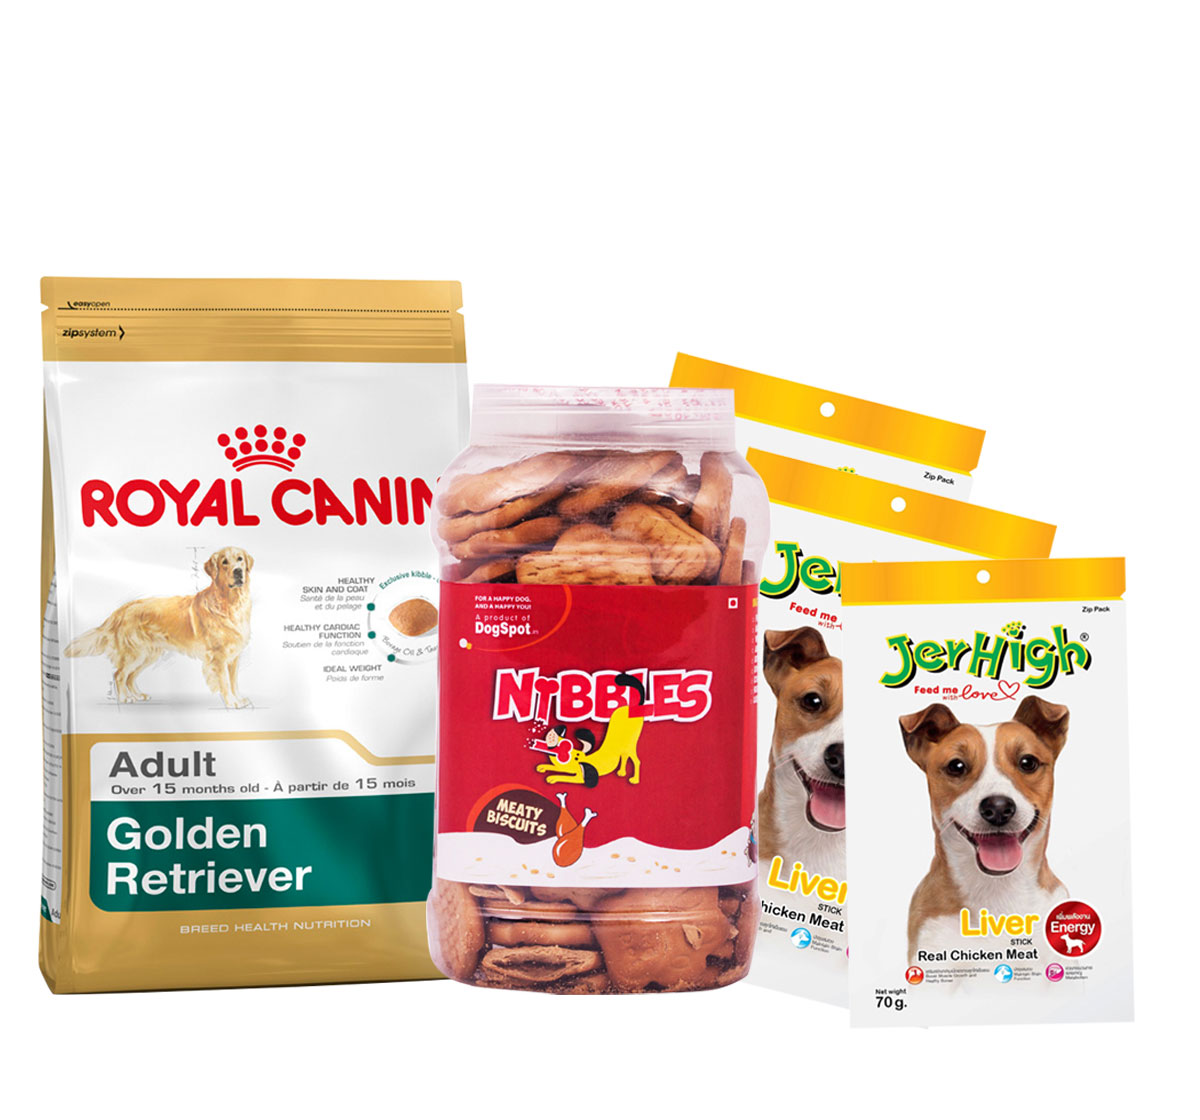 Royal Canin Golden Retriever Adult - 3 Kg With Treats & Biscuit